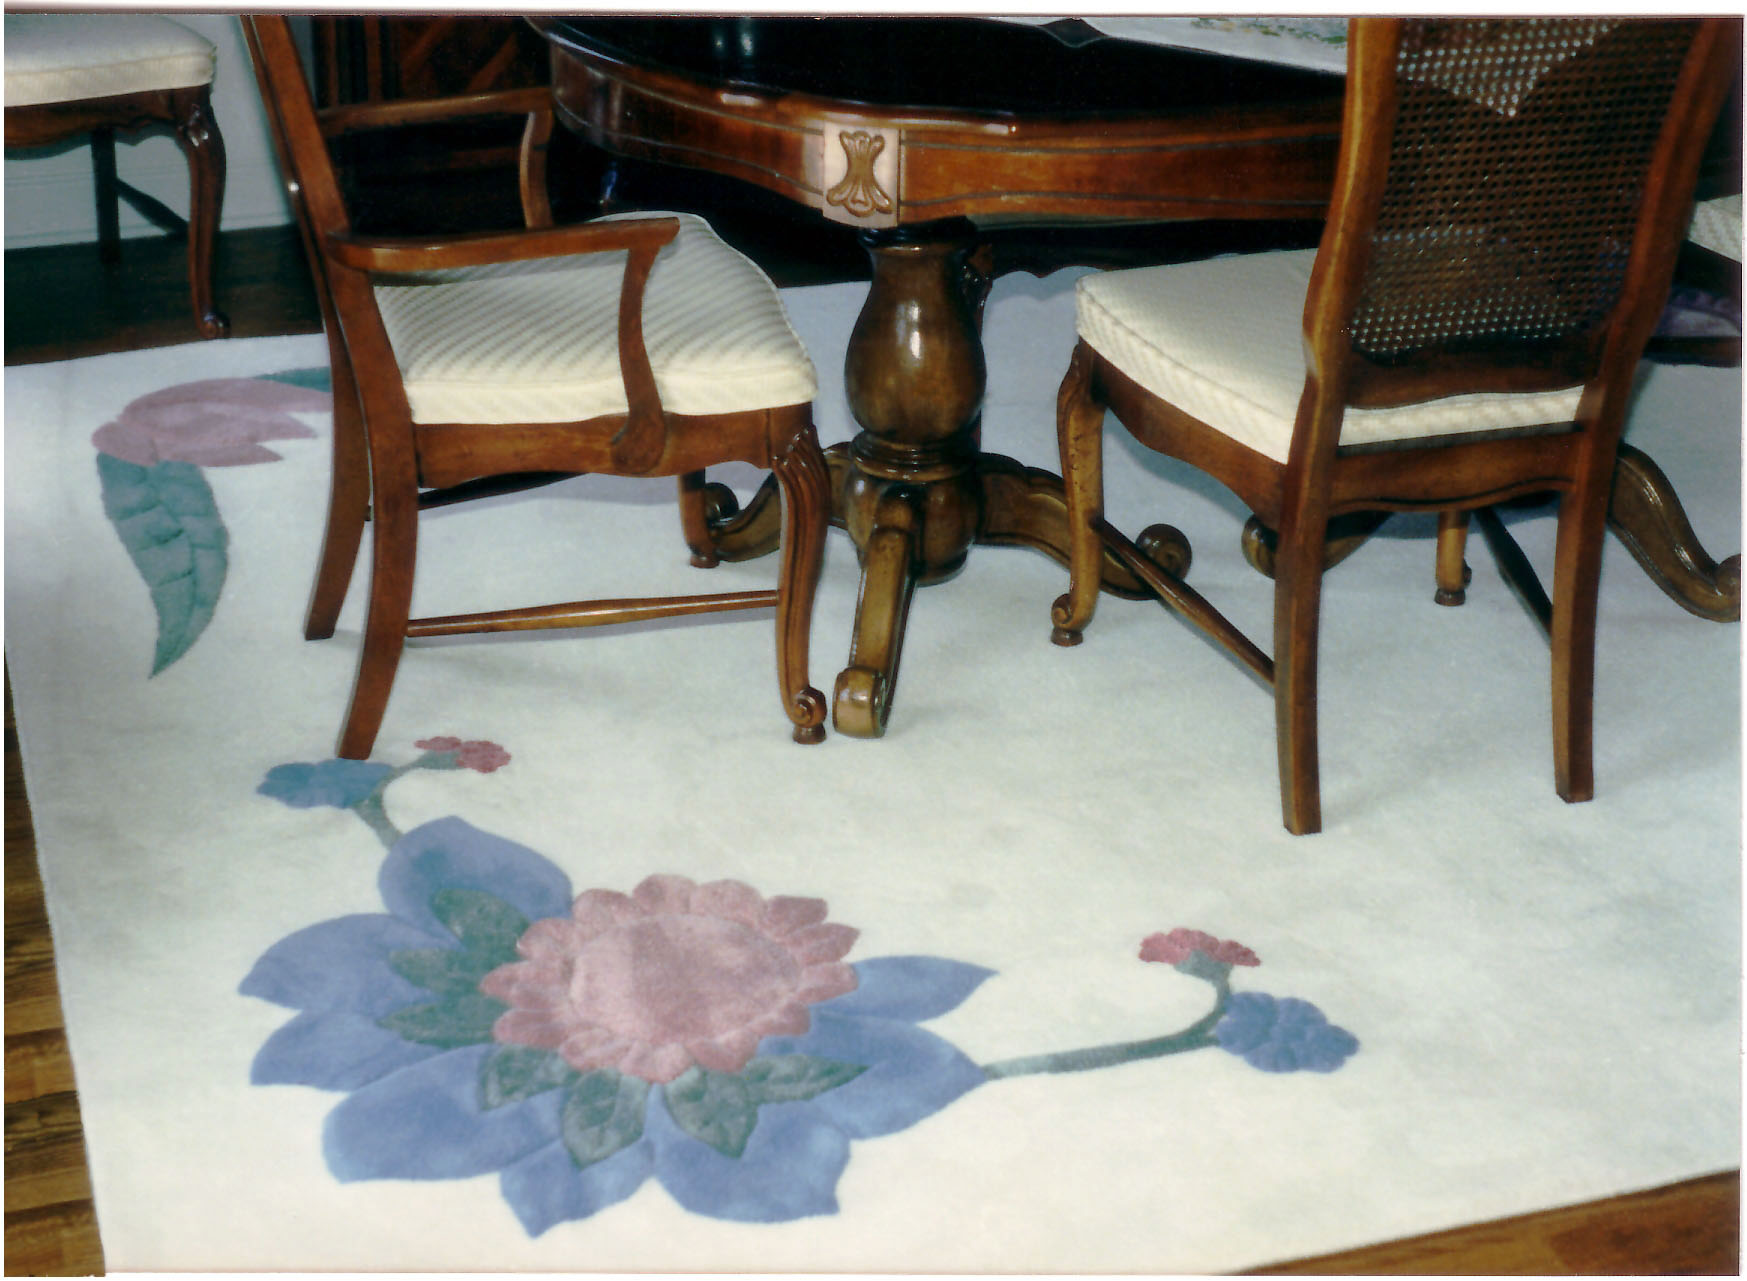 This custom floral design, created by David, gives the traditional look of this dining room a dash of whimsy.